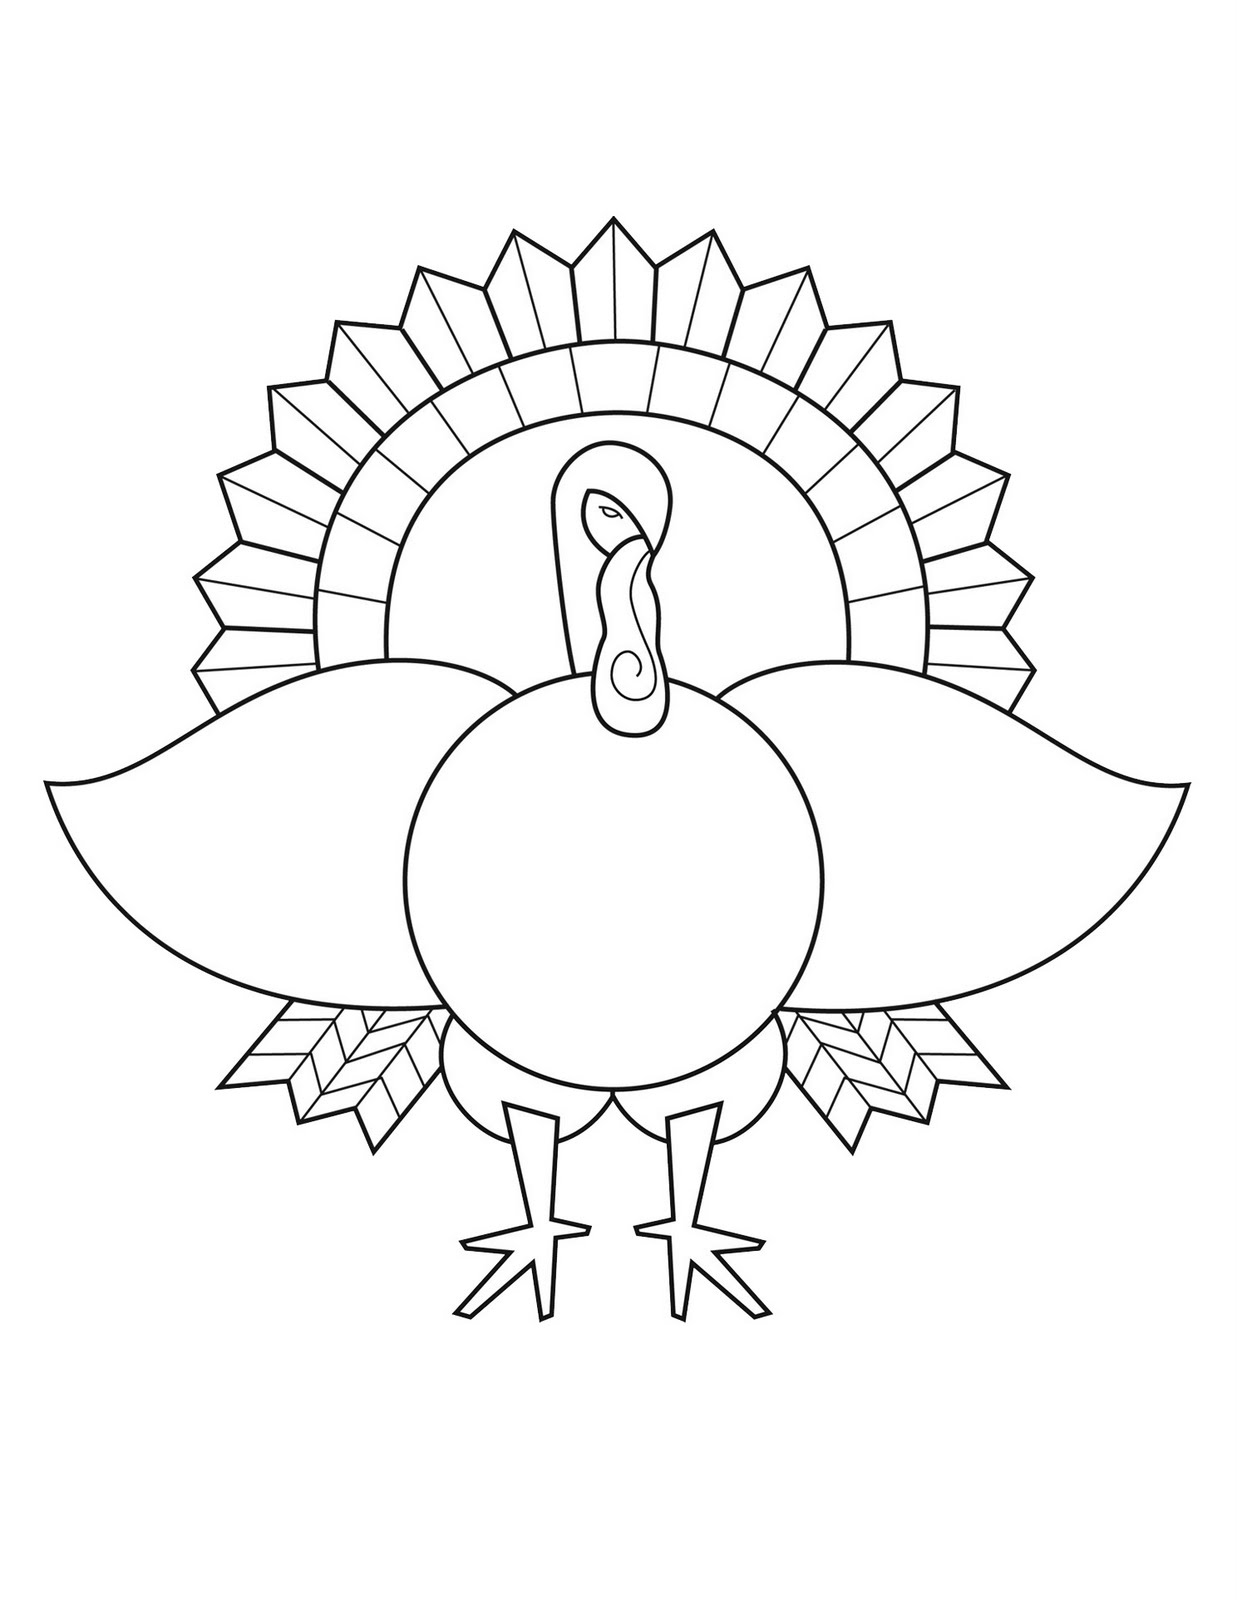 Turkey Coloring Page | Art Projects for Kids